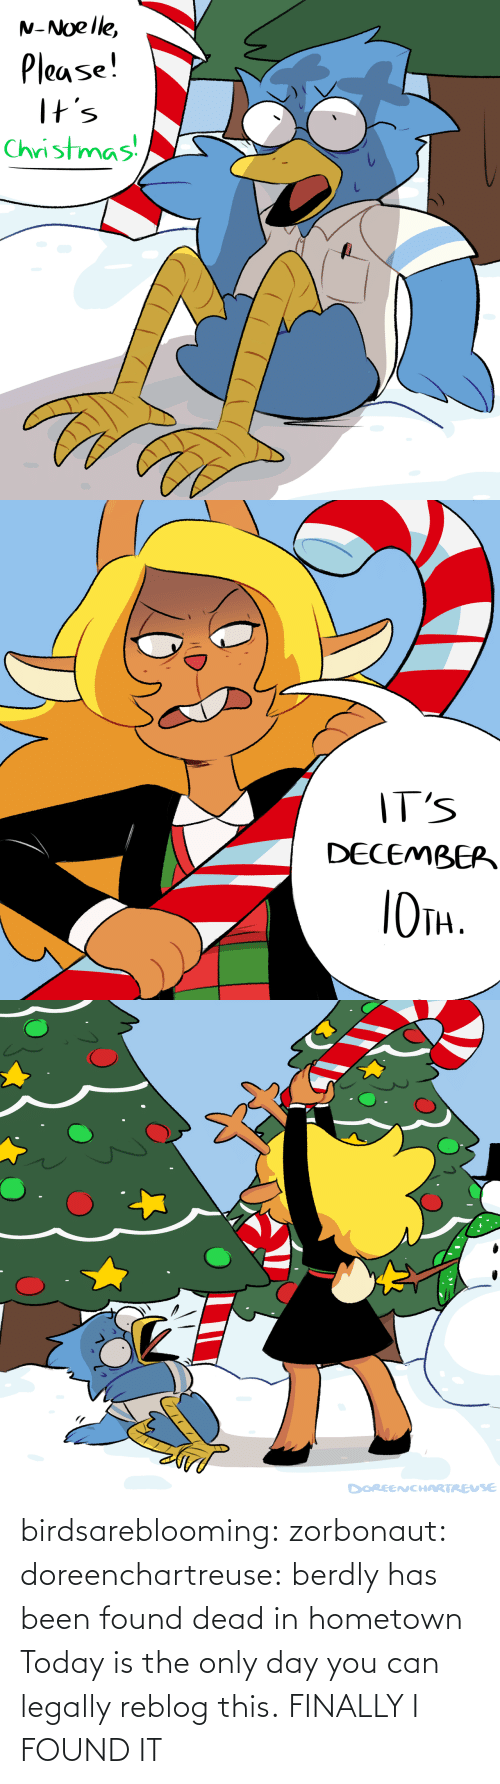 Christmas, Target, and Tumblr: N-Noelle,  Please!  I+s  Christmas   IT'S  DECEMBEP  TH.   DOREENCHARTREUSE birdsareblooming:  zorbonaut:  doreenchartreuse: berdly has been found dead in hometown Today is the only day you can legally reblog this.  FINALLY I FOUND IT